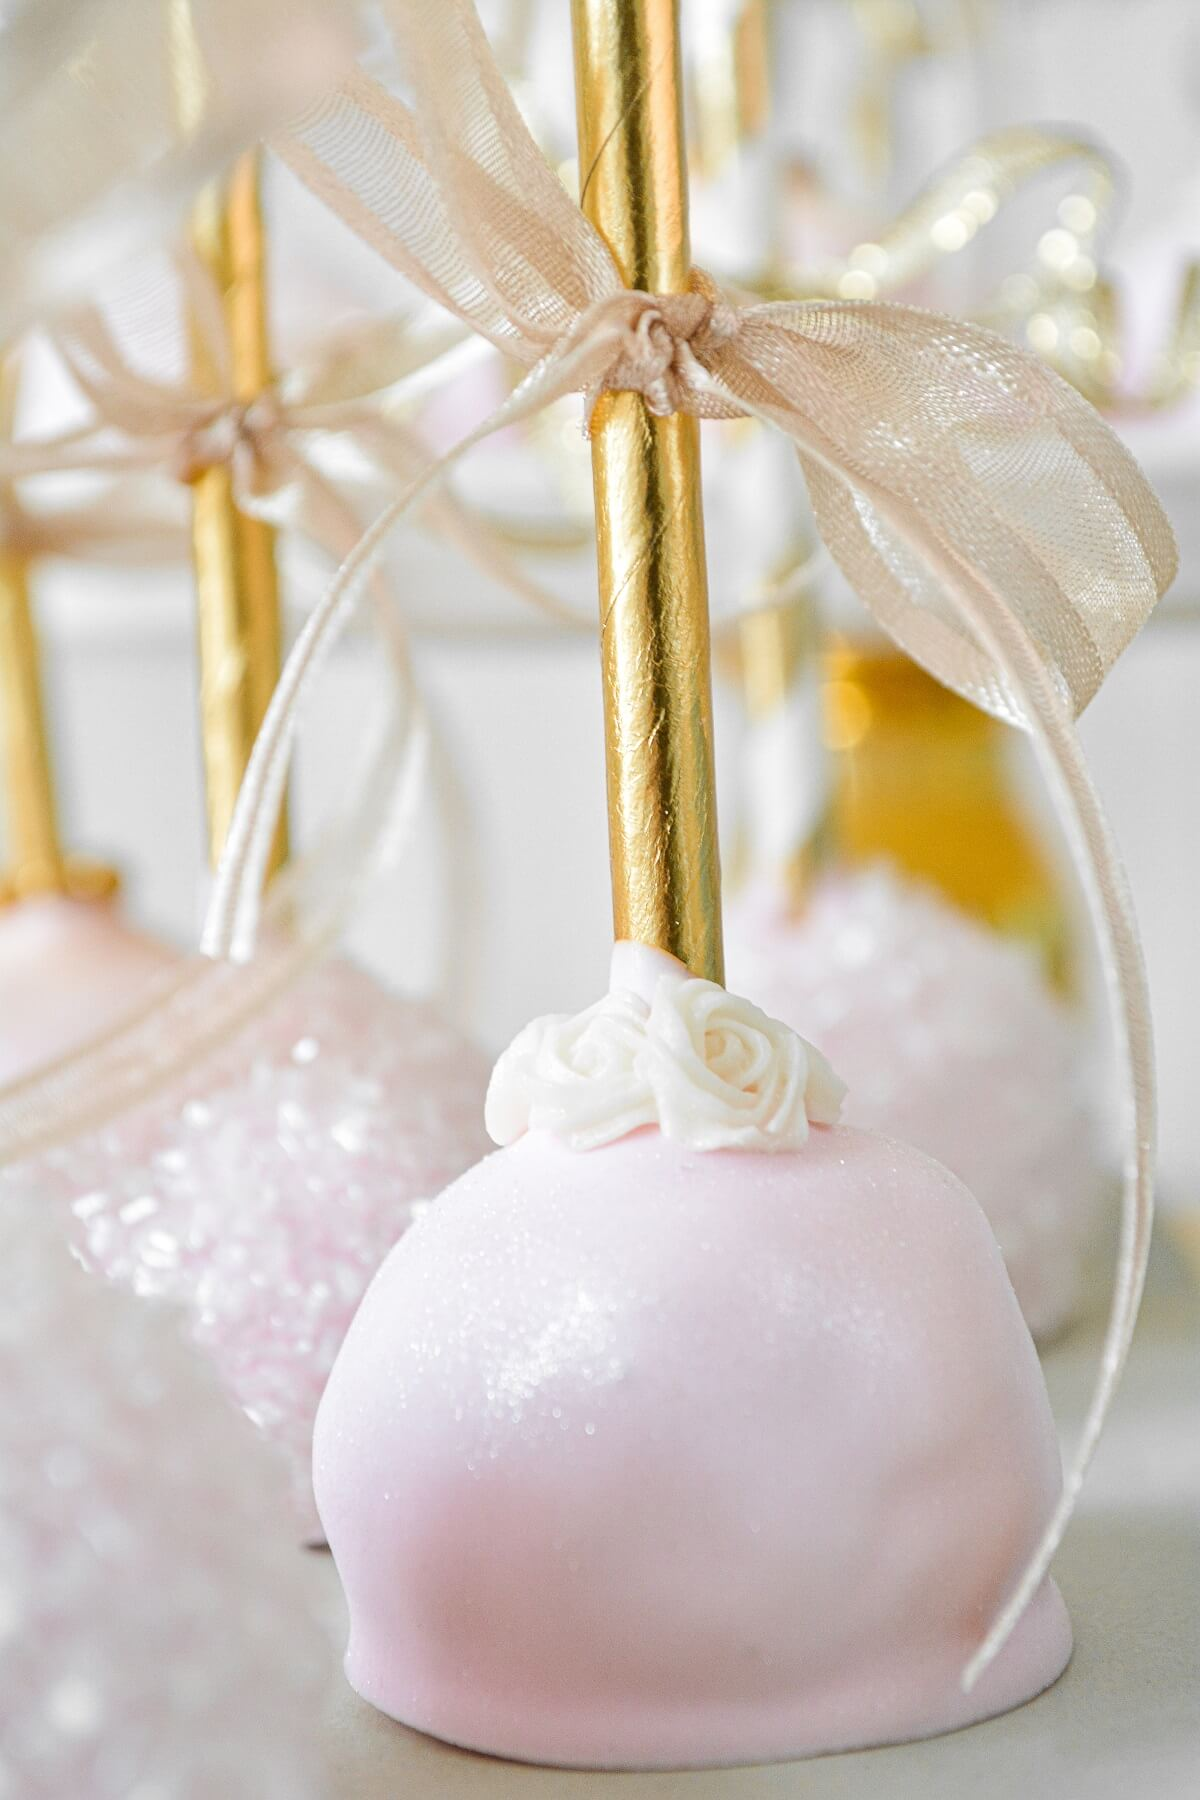 Pink and gold princess party cake pops with gold ribbons.